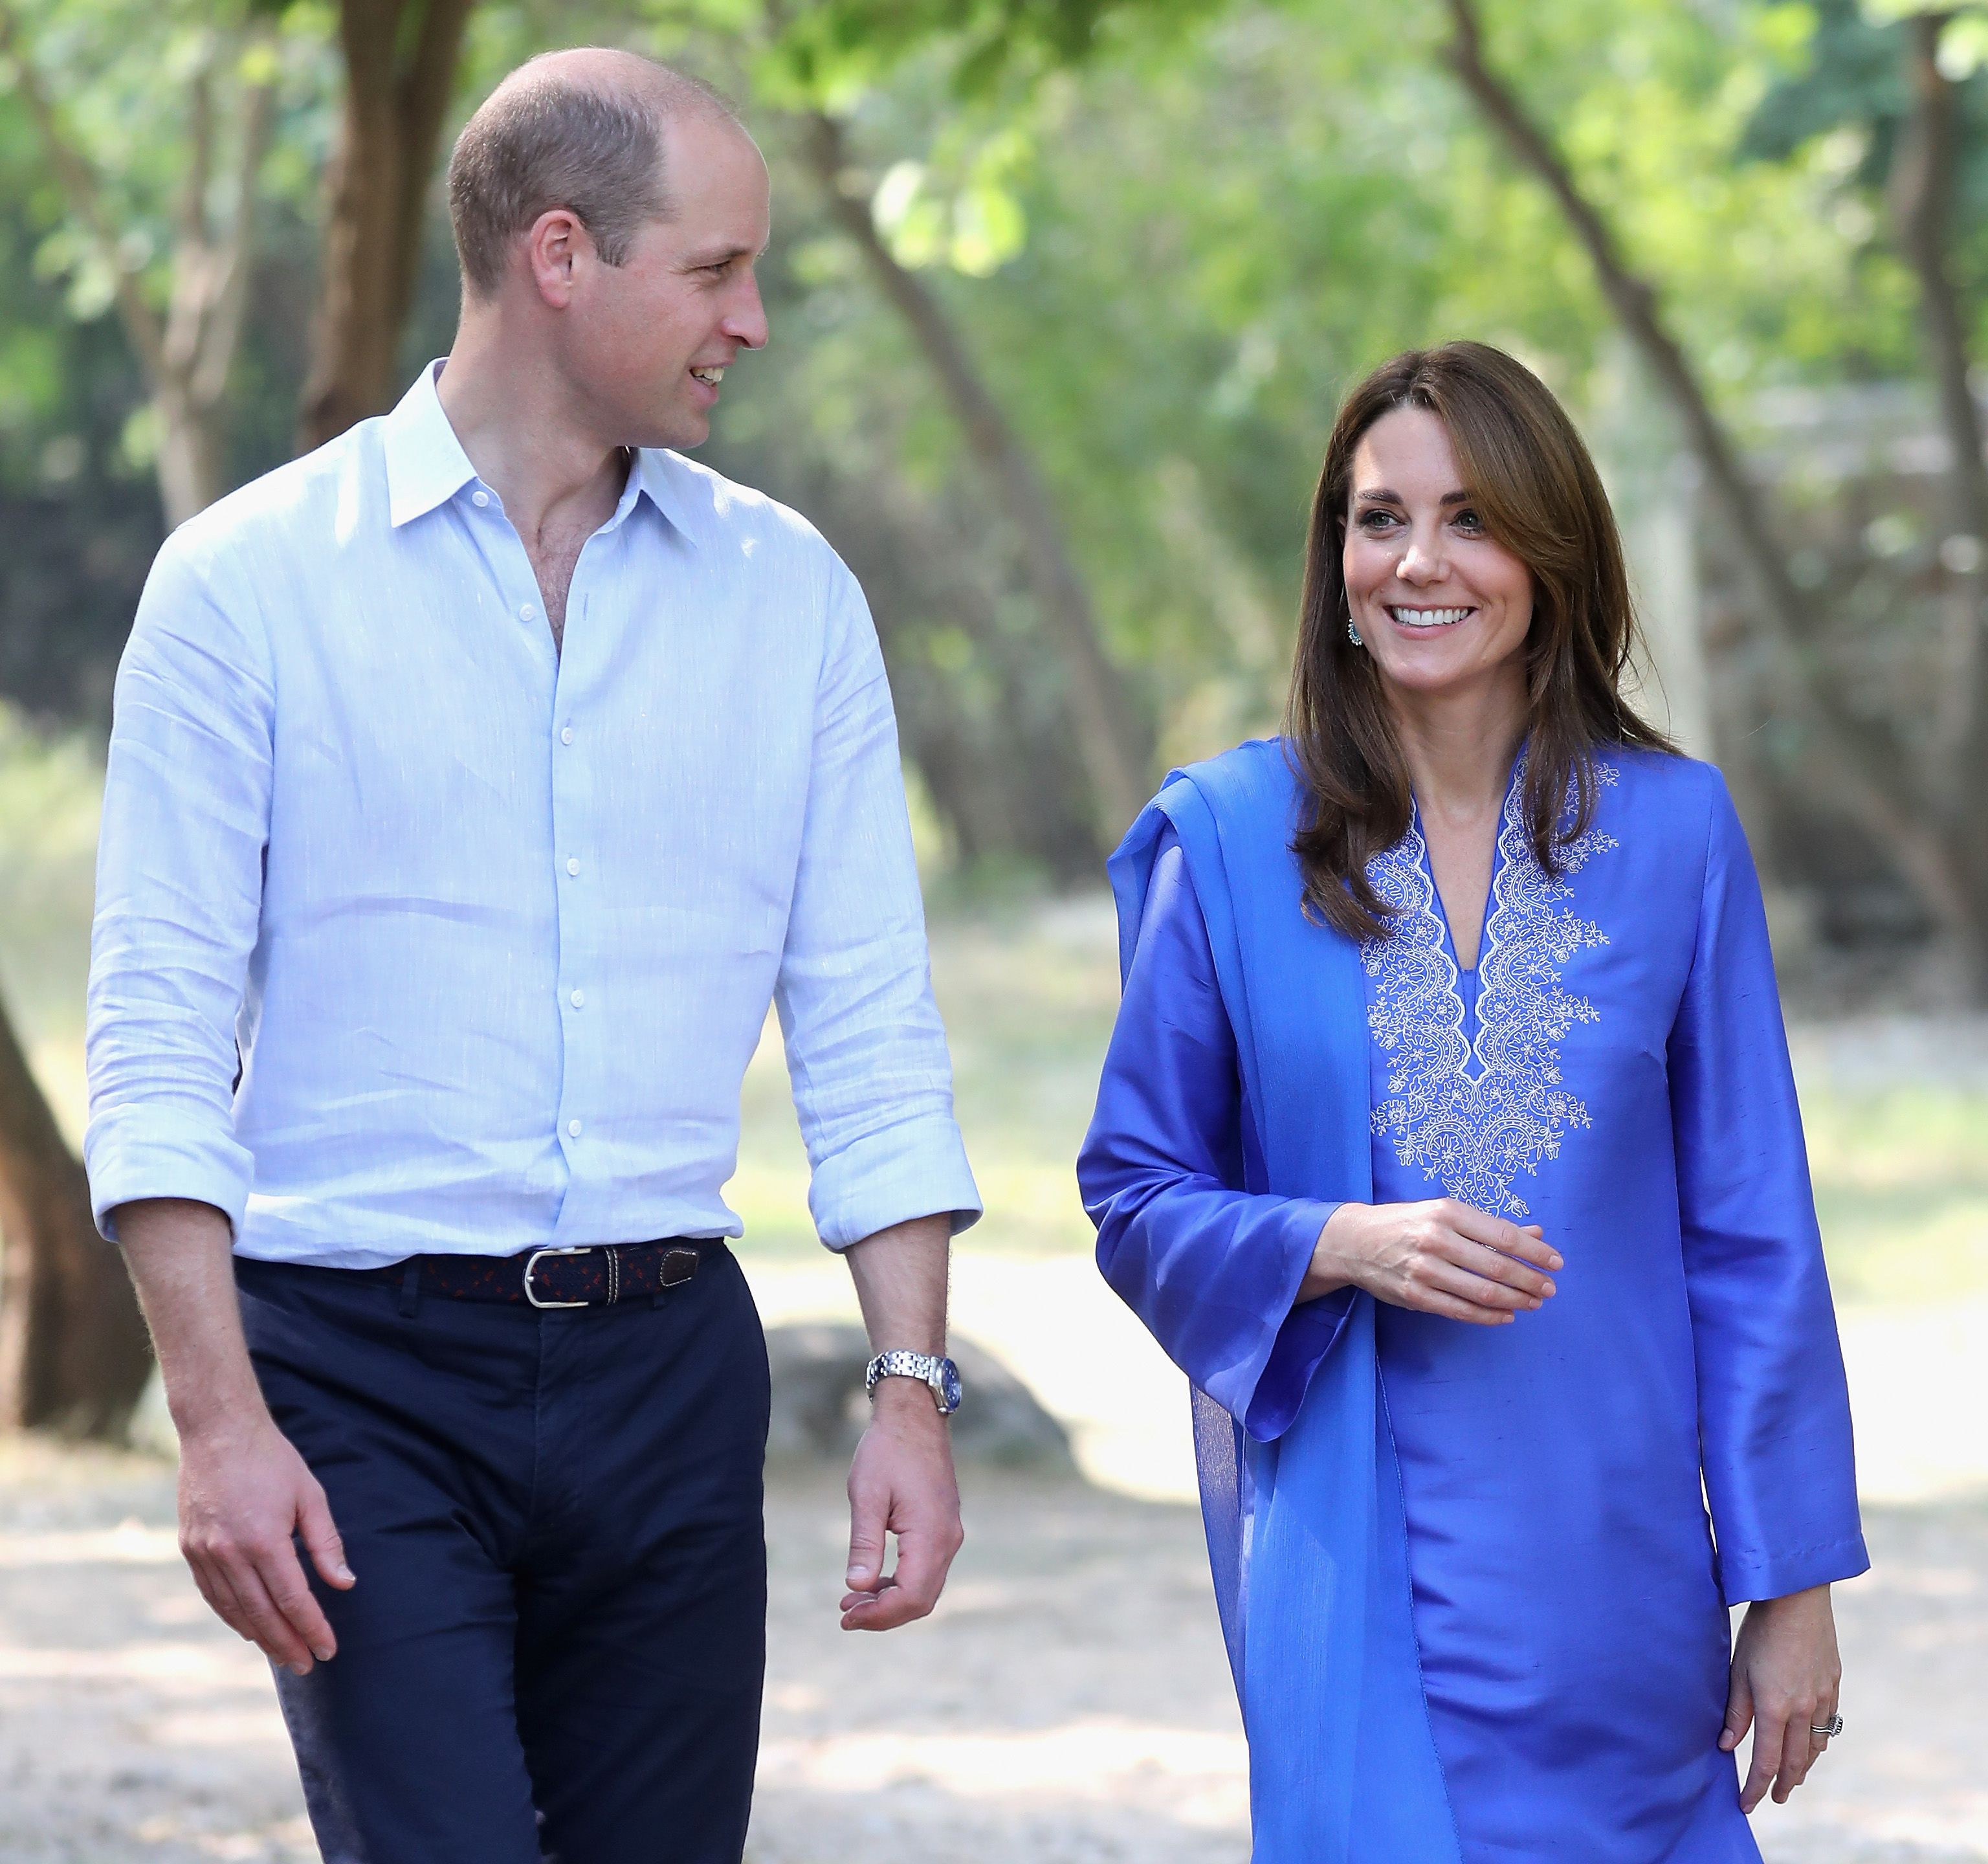 Når fikk prins William og Kate Middleton Start Dating eksempel overskrifter for dating profil